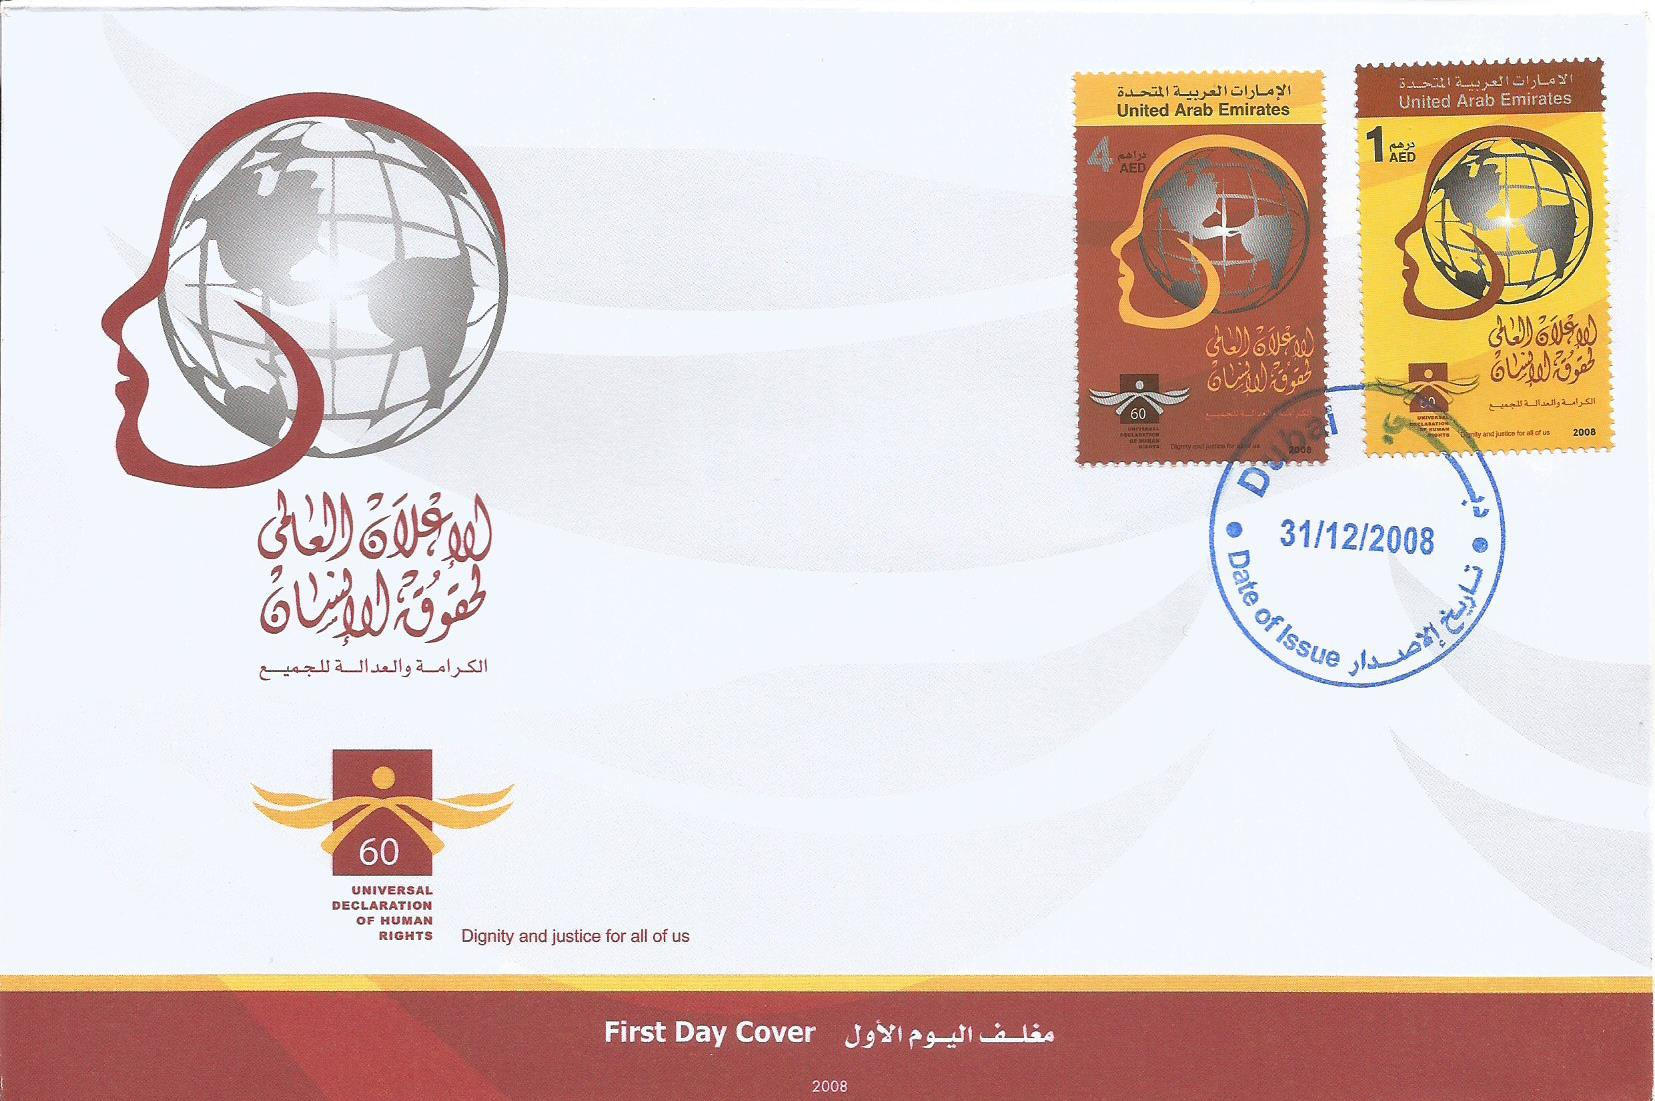 Stamps on 60th Anniversary of Universal Declaration of Human